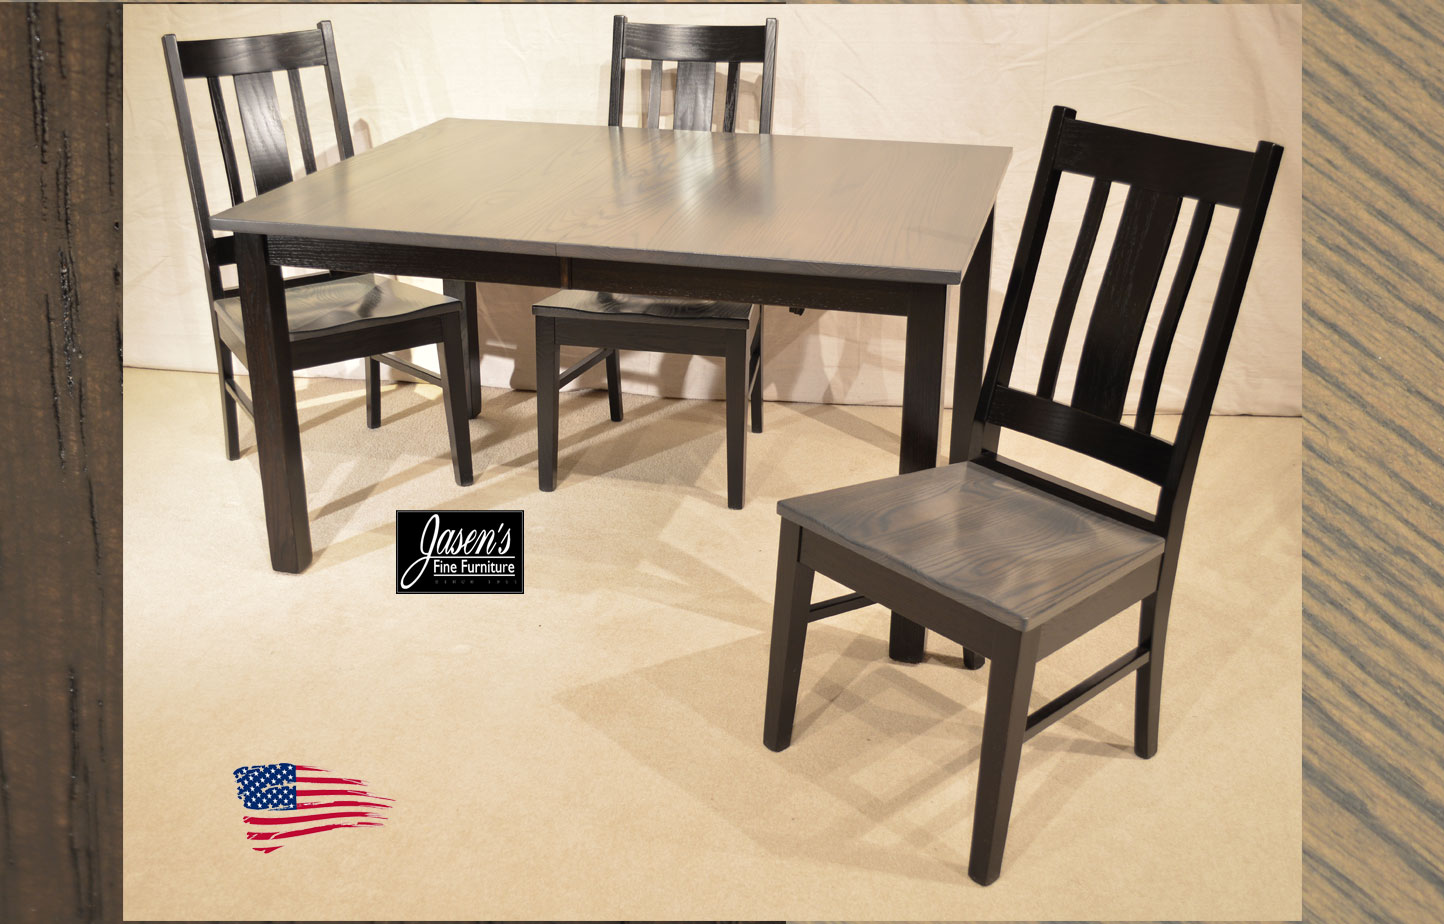 Plymouth Furniture Clearance Plymouth Table Jasen 39s Fine Furniture Since 1951